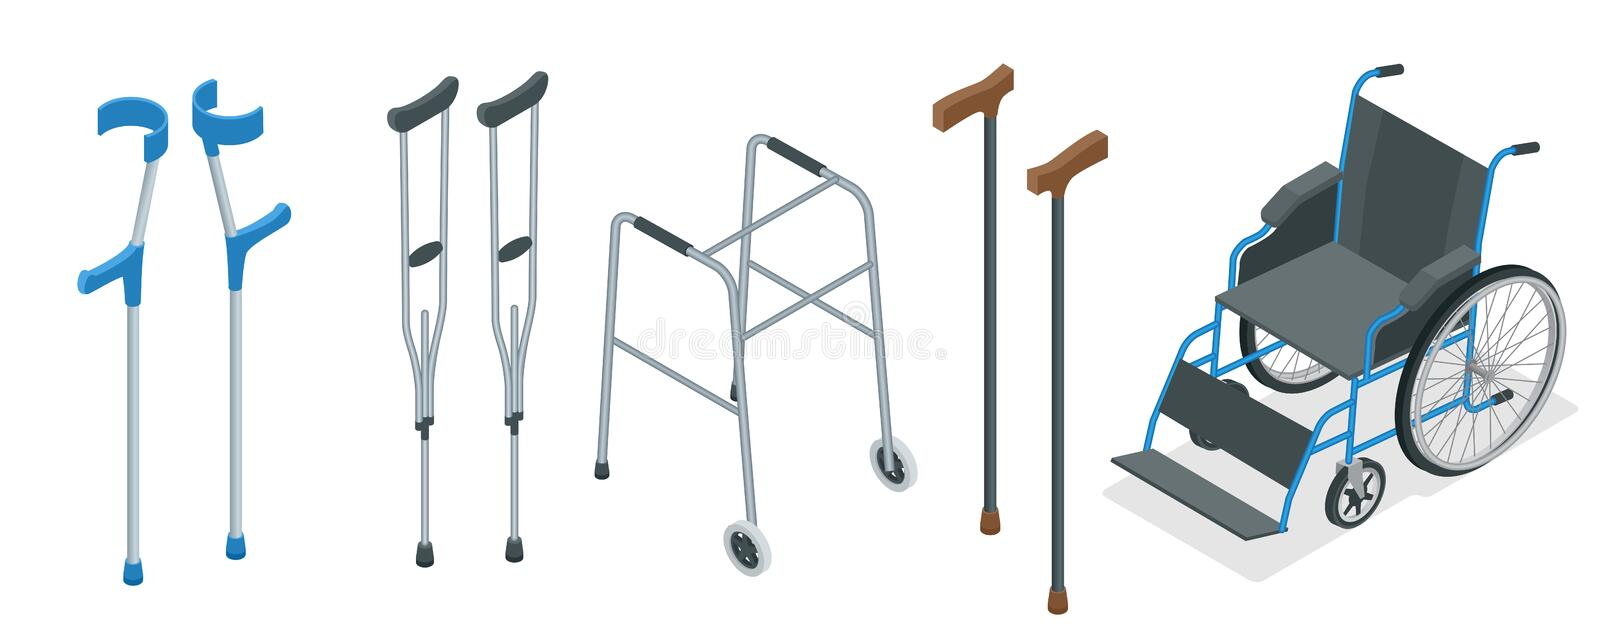 Isometric set of mobility aids including a wheelchair, walker, crutches, quad cane, and forearm crutches. Vector. Illustration. Health care concept stock illustration